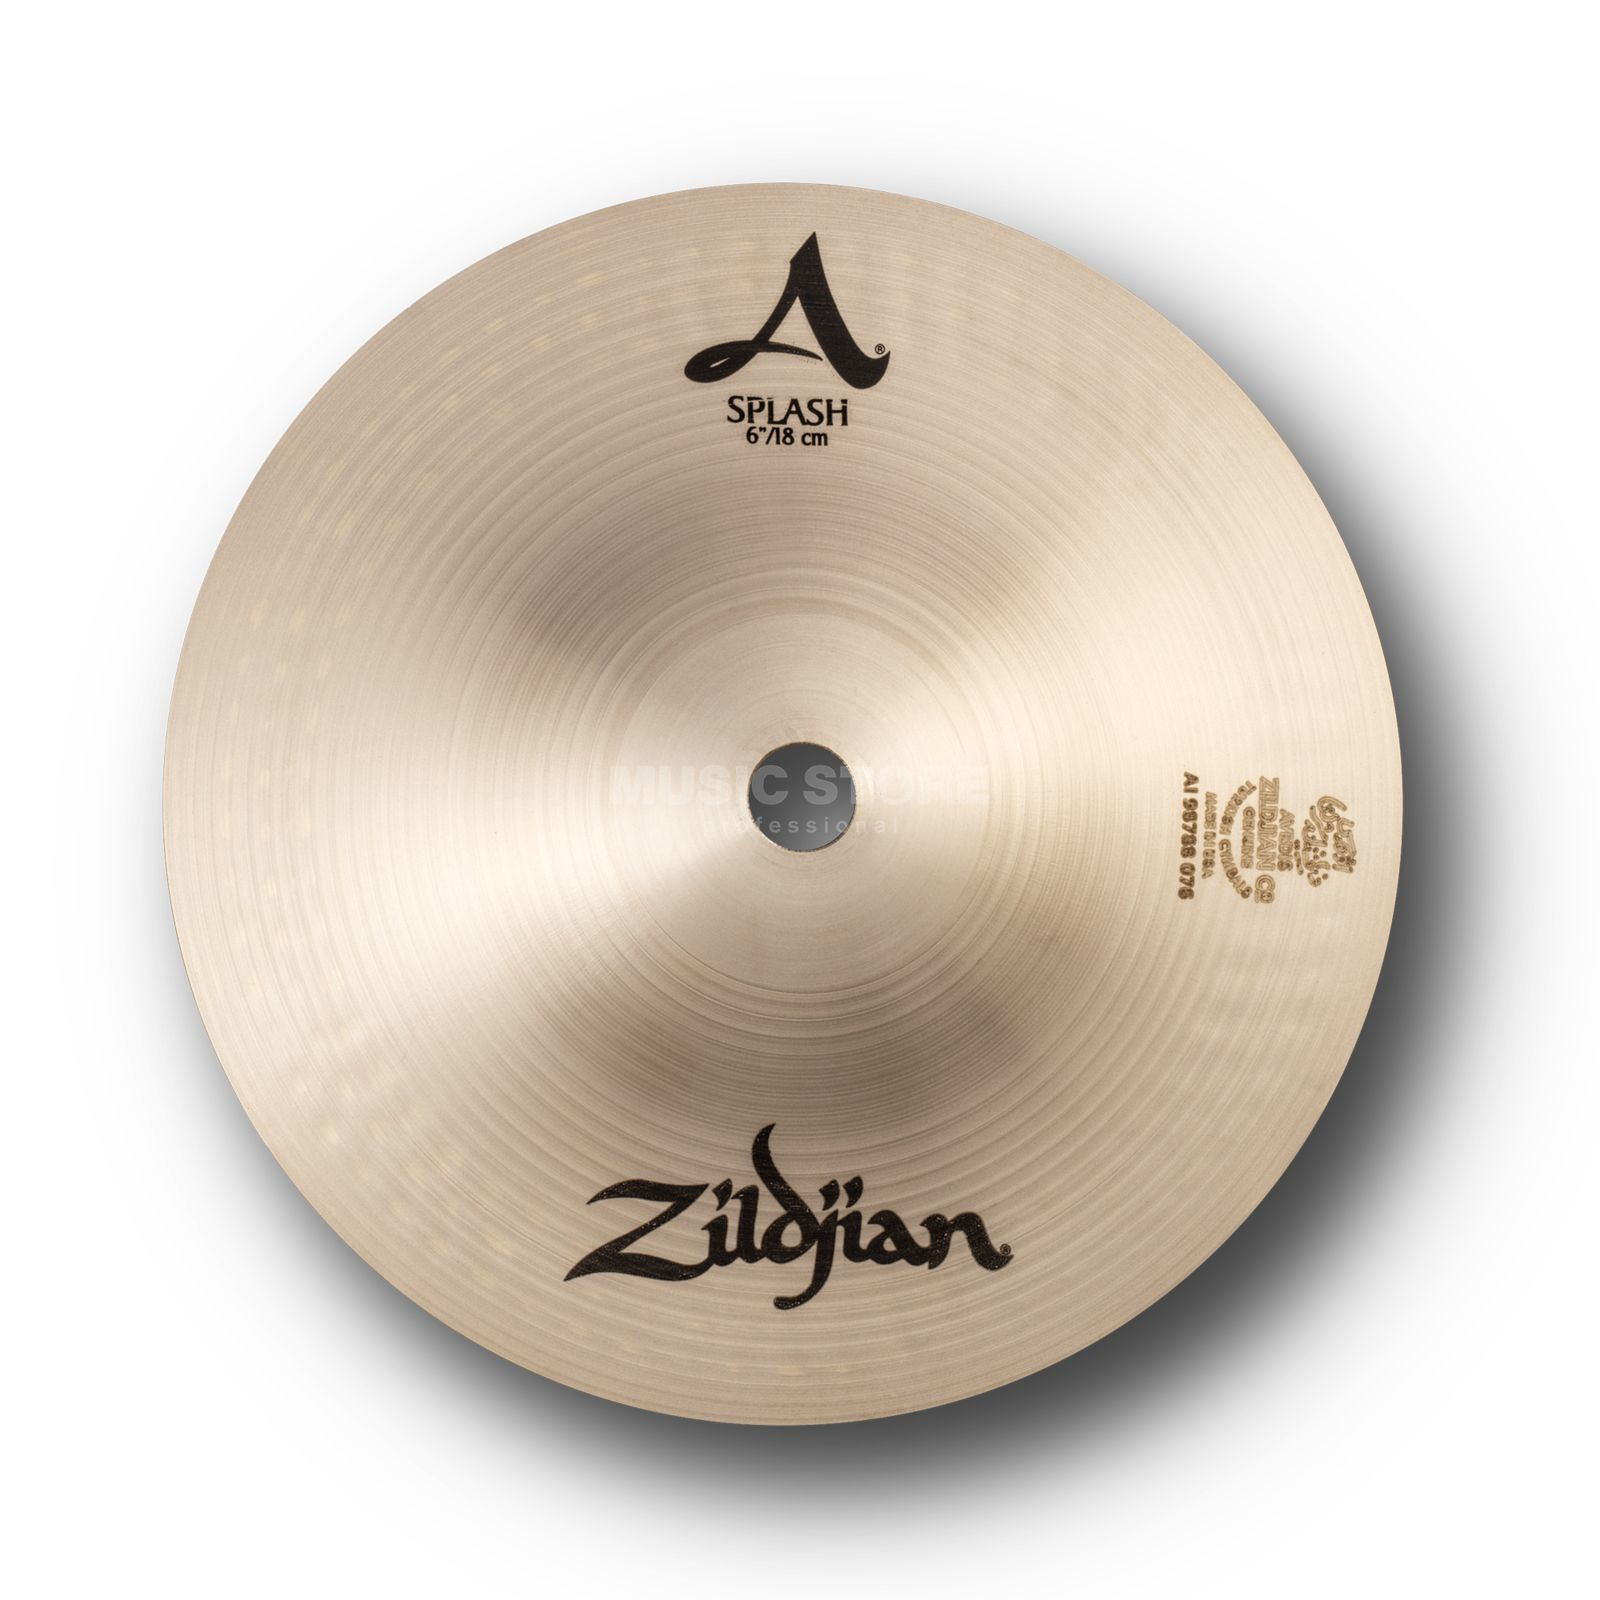 "Zildjian A' Zildjian Splash 6"", Traditional Finish Immagine prodotto"